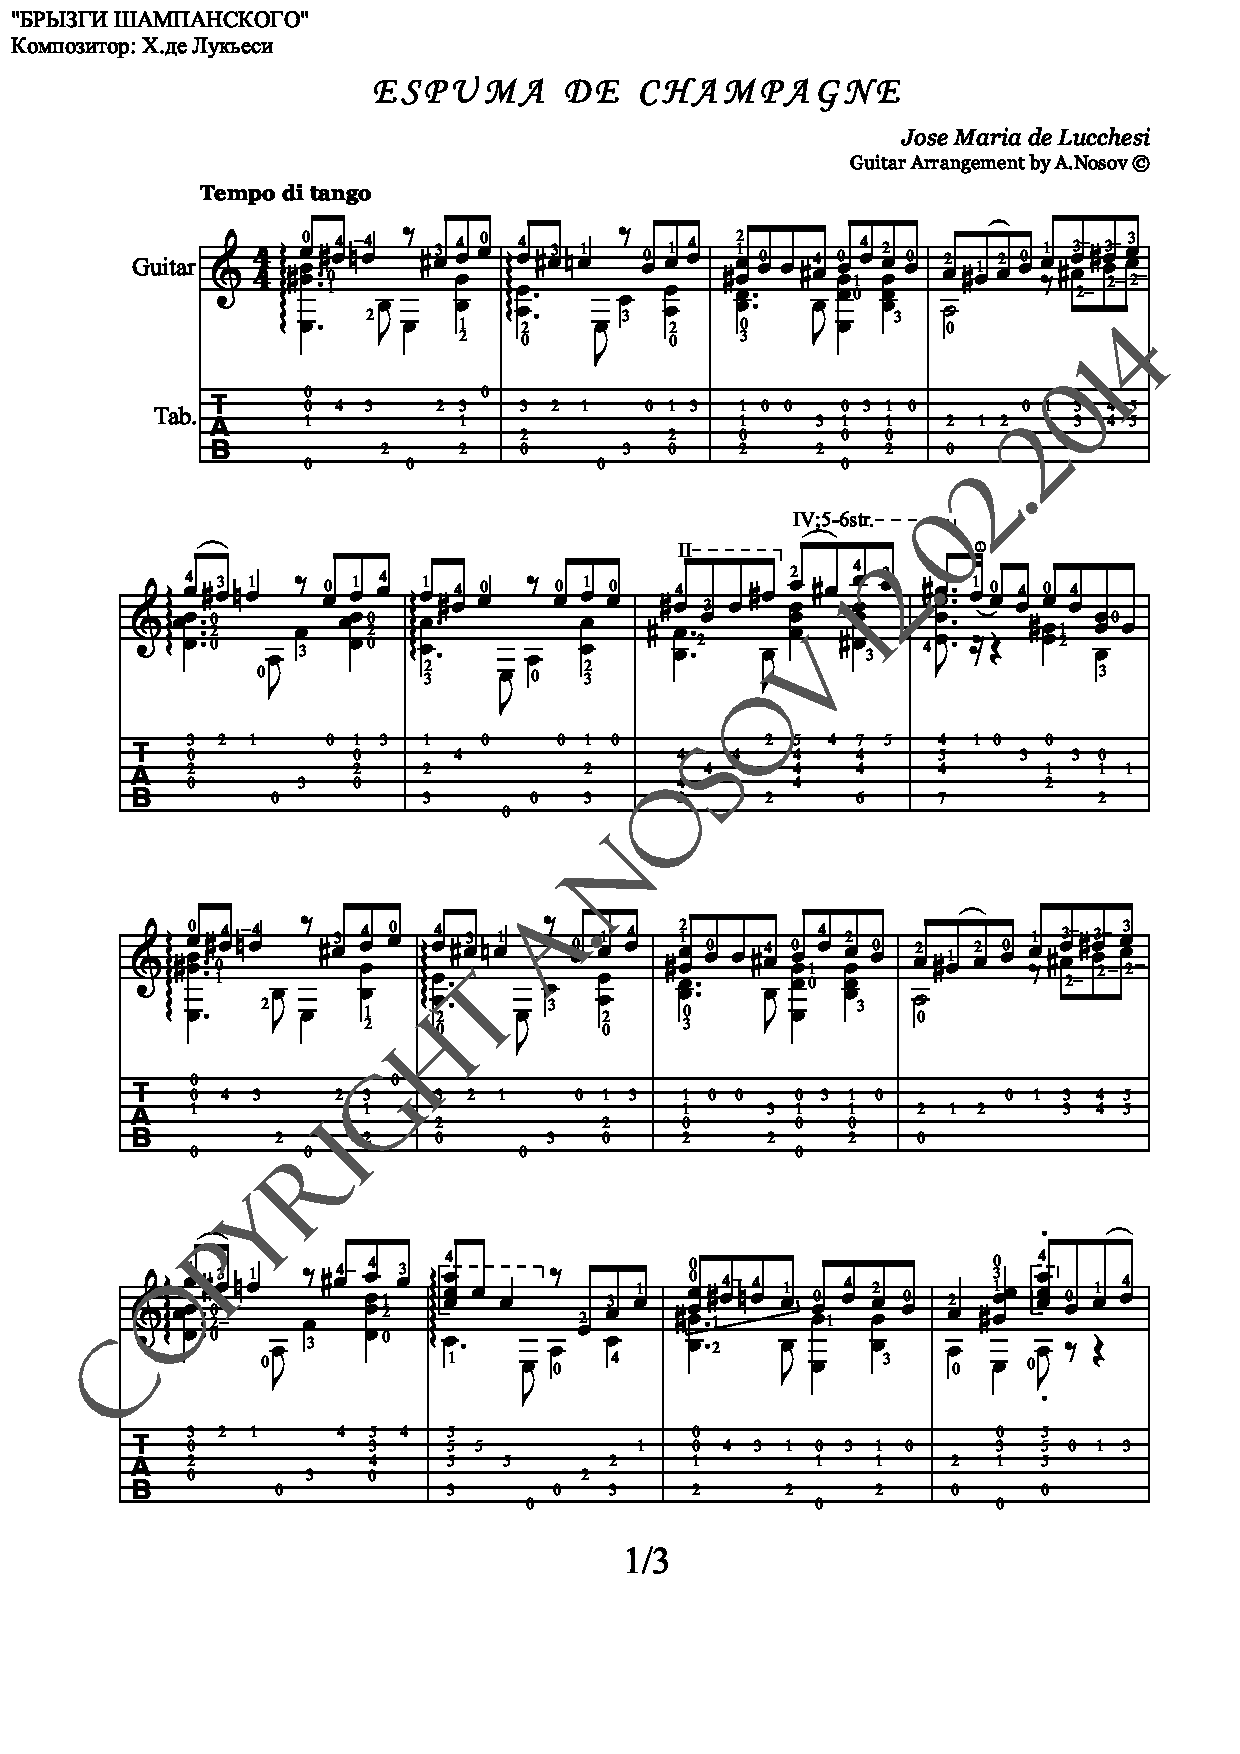 Espuma de Champagne (Sheet music and tabs for guitar)